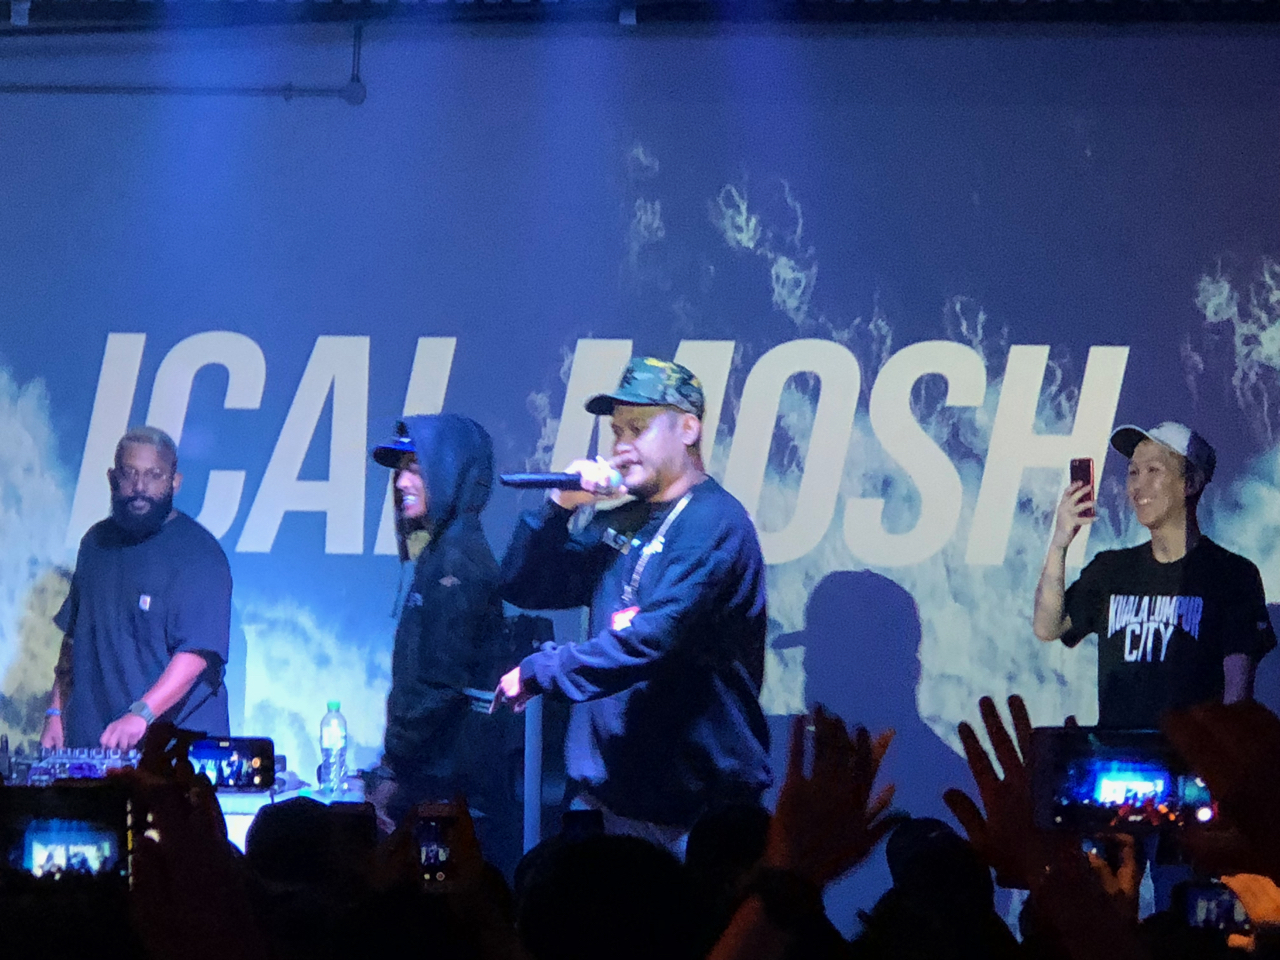 Ical Mosh, Malaysian rapper, at the Bee club in KL